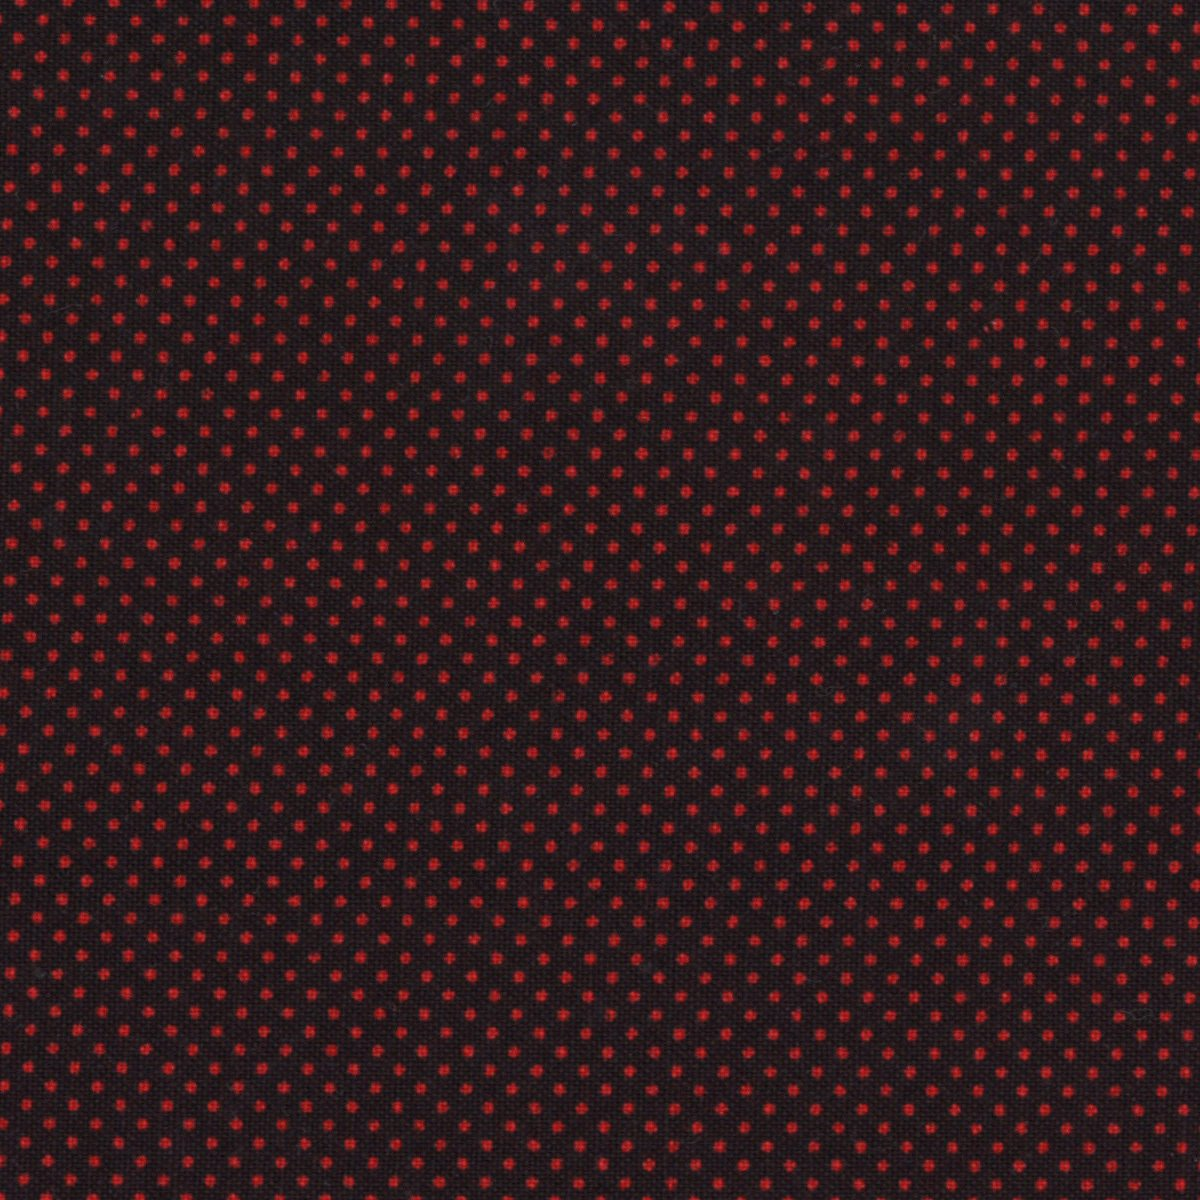 Micro Dots Blk/Red